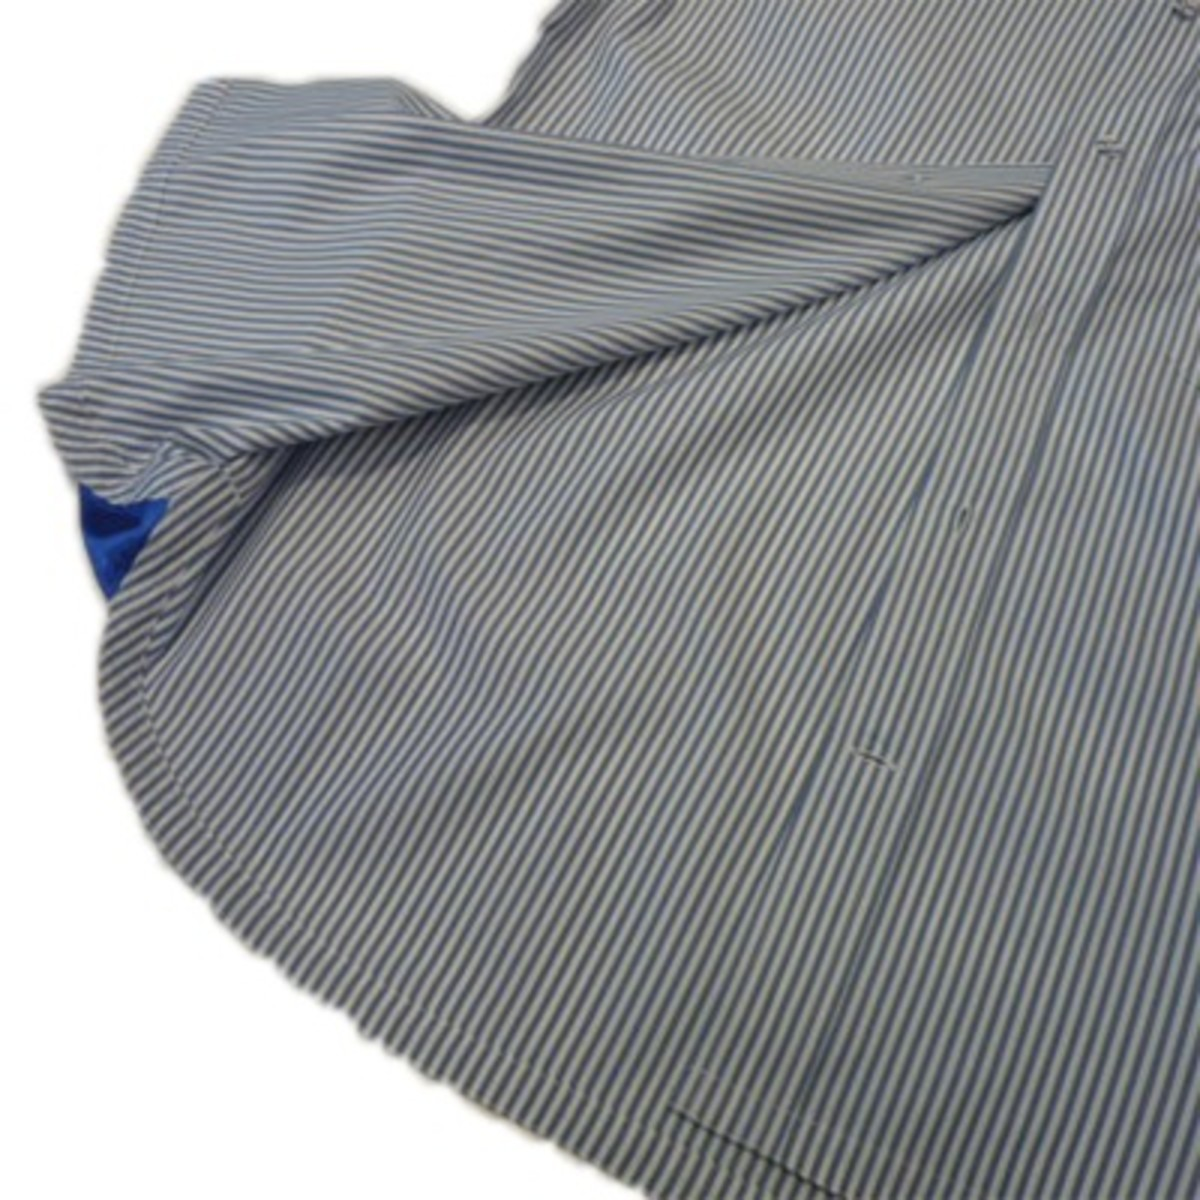 Wide Seam Stripe Half Sleeve Shirts 4